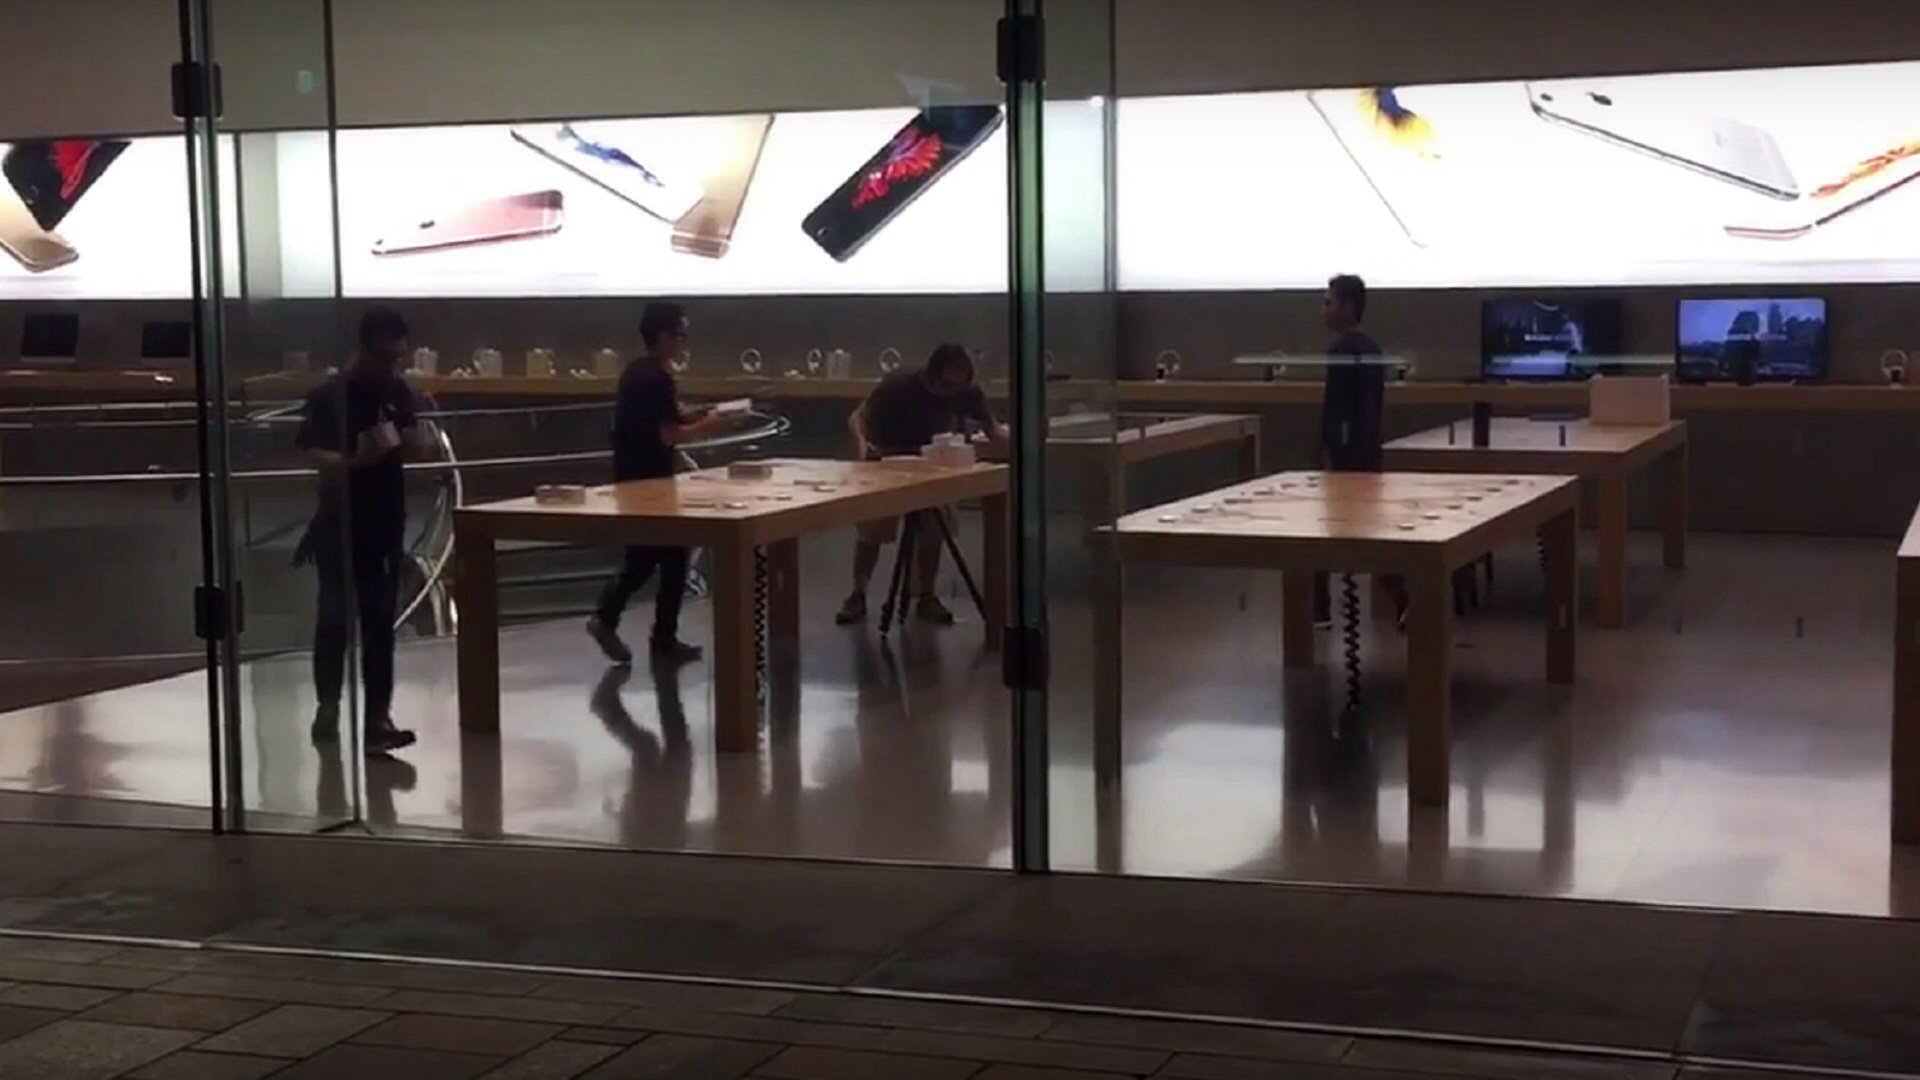 Photo of iPhone 6S Display Models and Banner Filmed at Tokyo Store